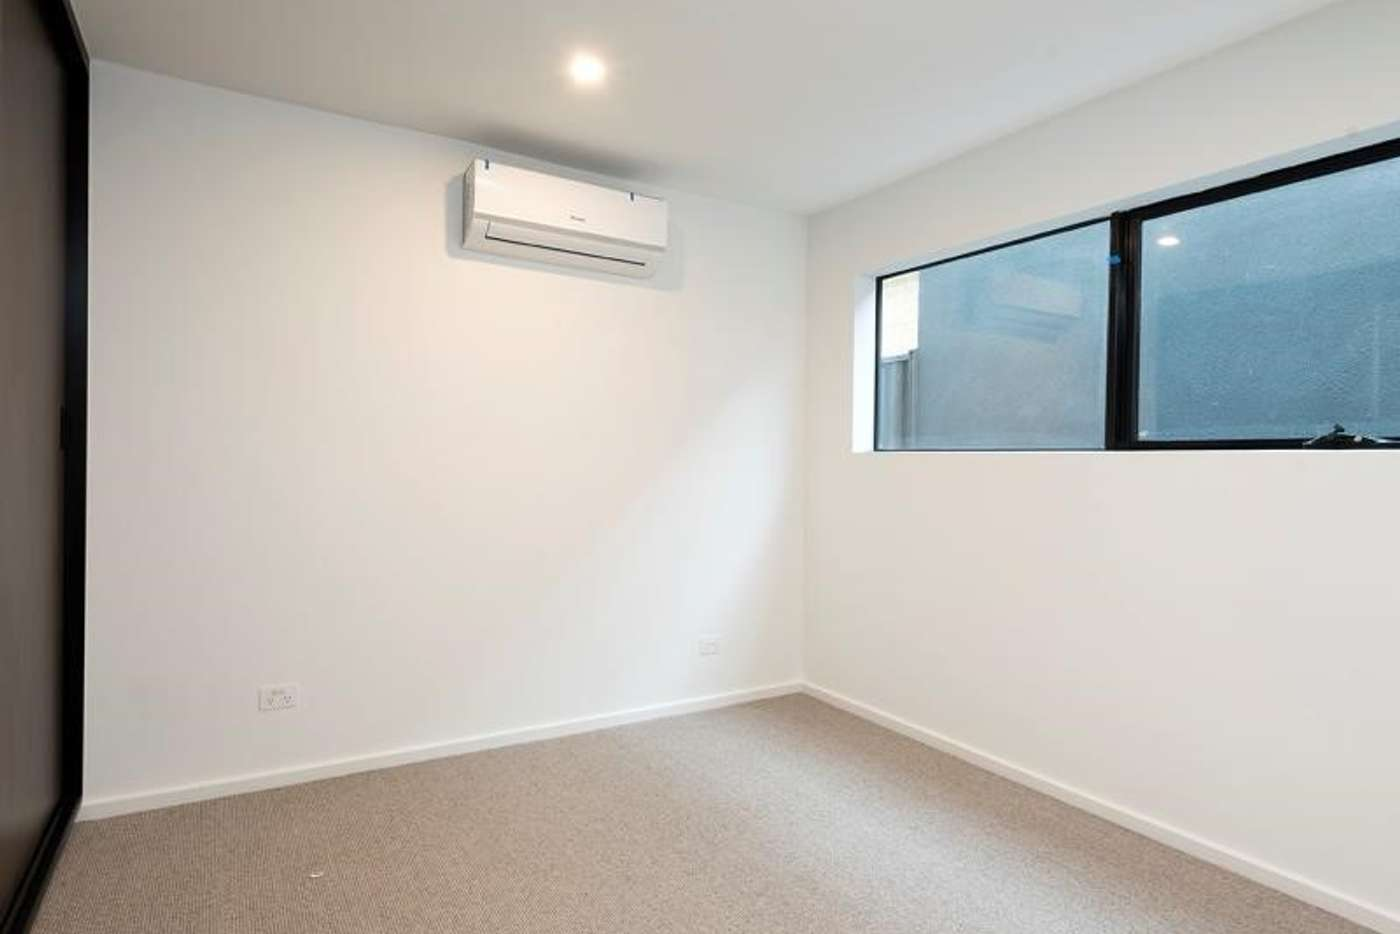 Seventh view of Homely townhouse listing, 3/19 Matthews Ave, Airport West VIC 3042